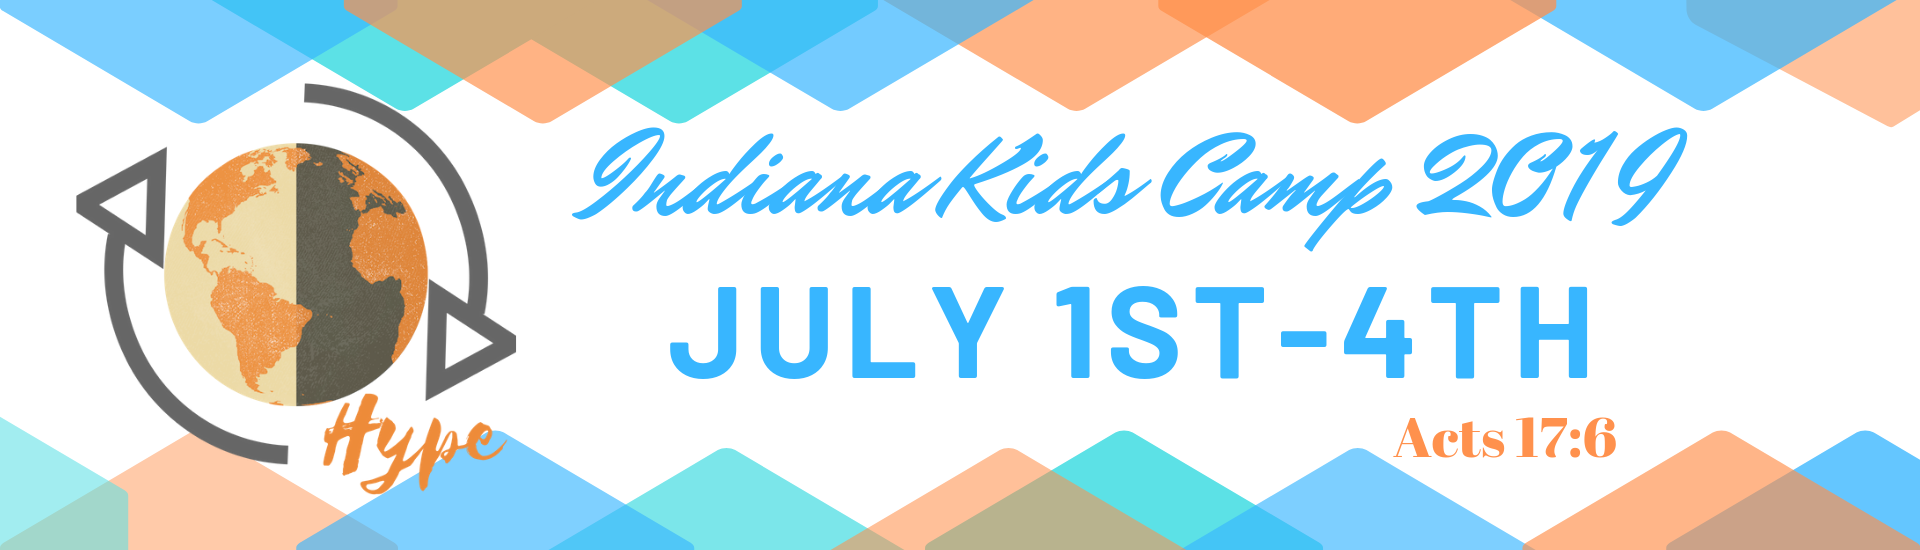 Kids Camper Information and Registration